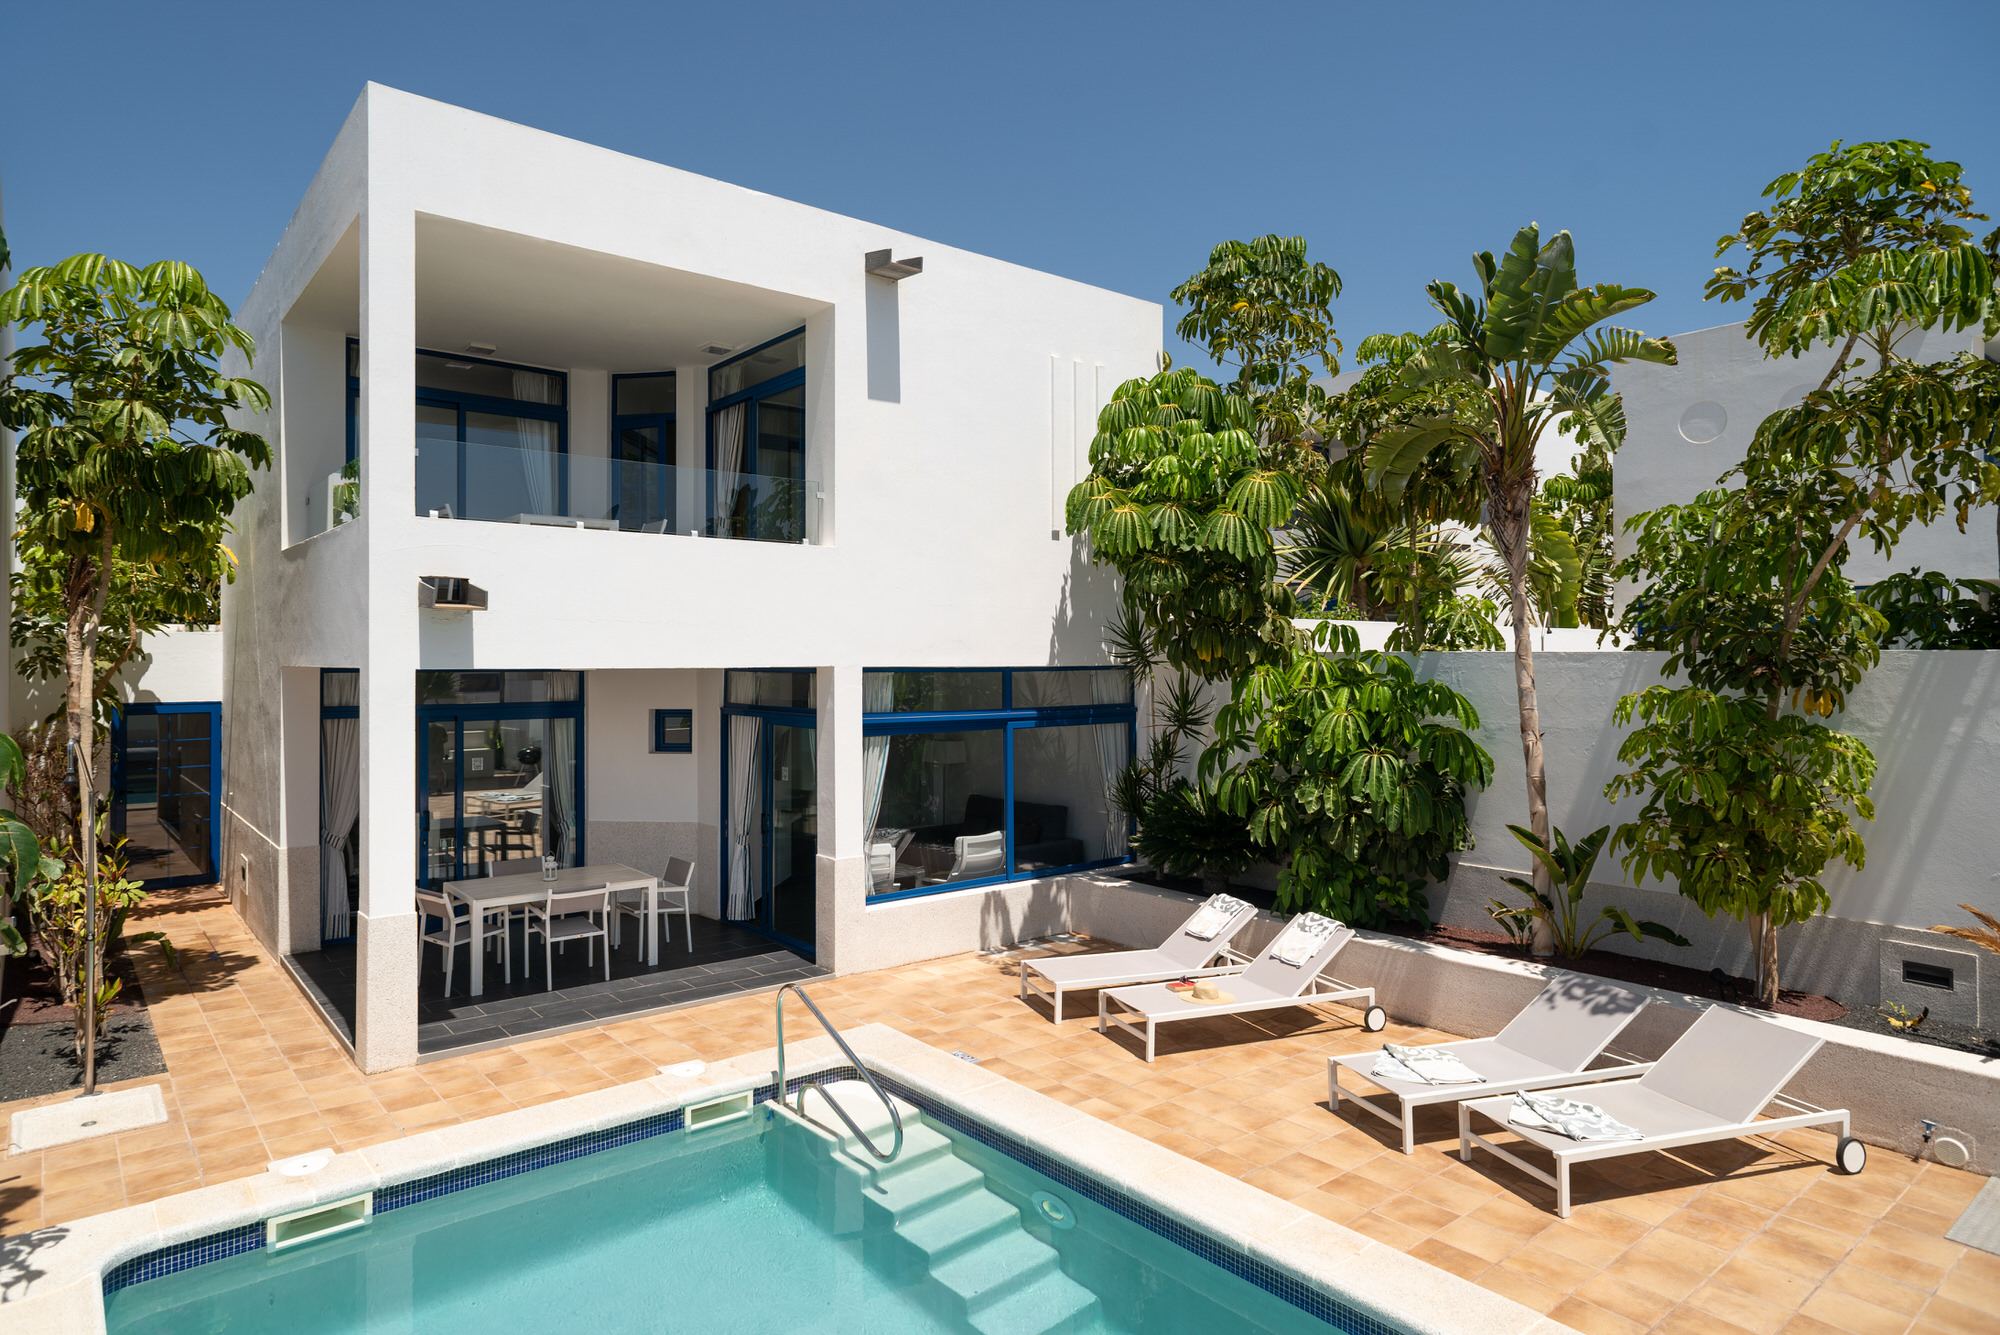 Lanzarote Luxury Villa With Private Pool In Playa Blanca